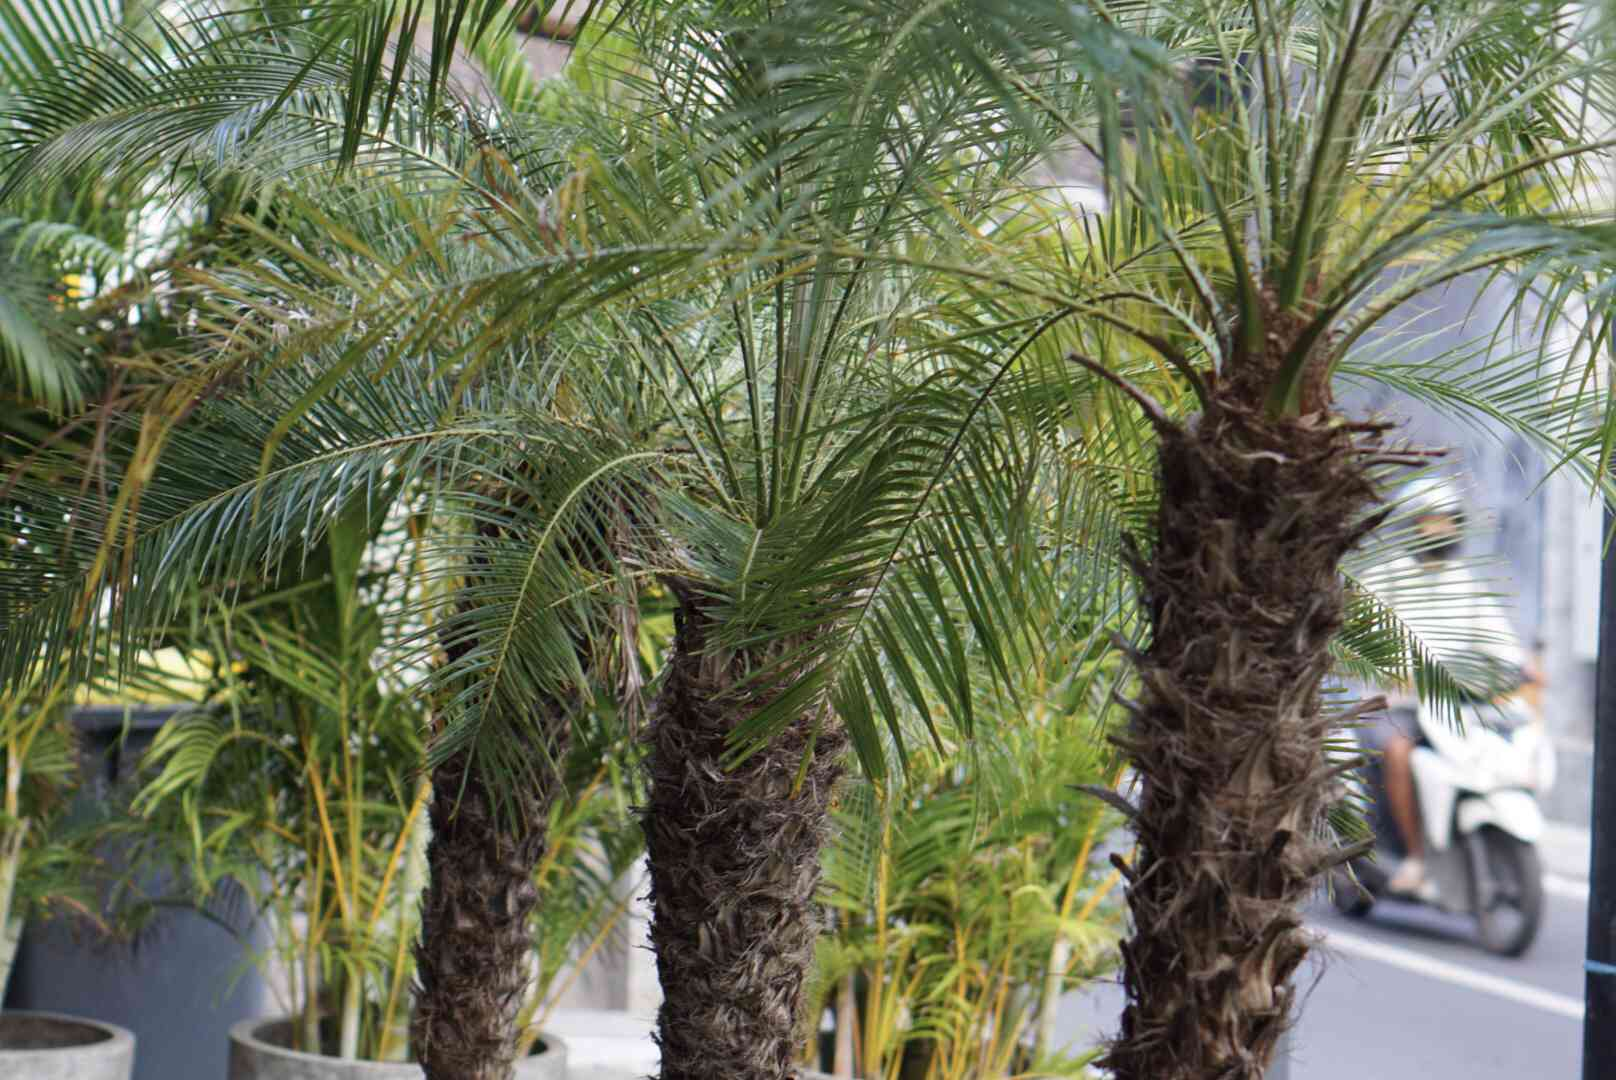 Robellini palm trees with a spiky trunk and sprawling fronds lined next to each other